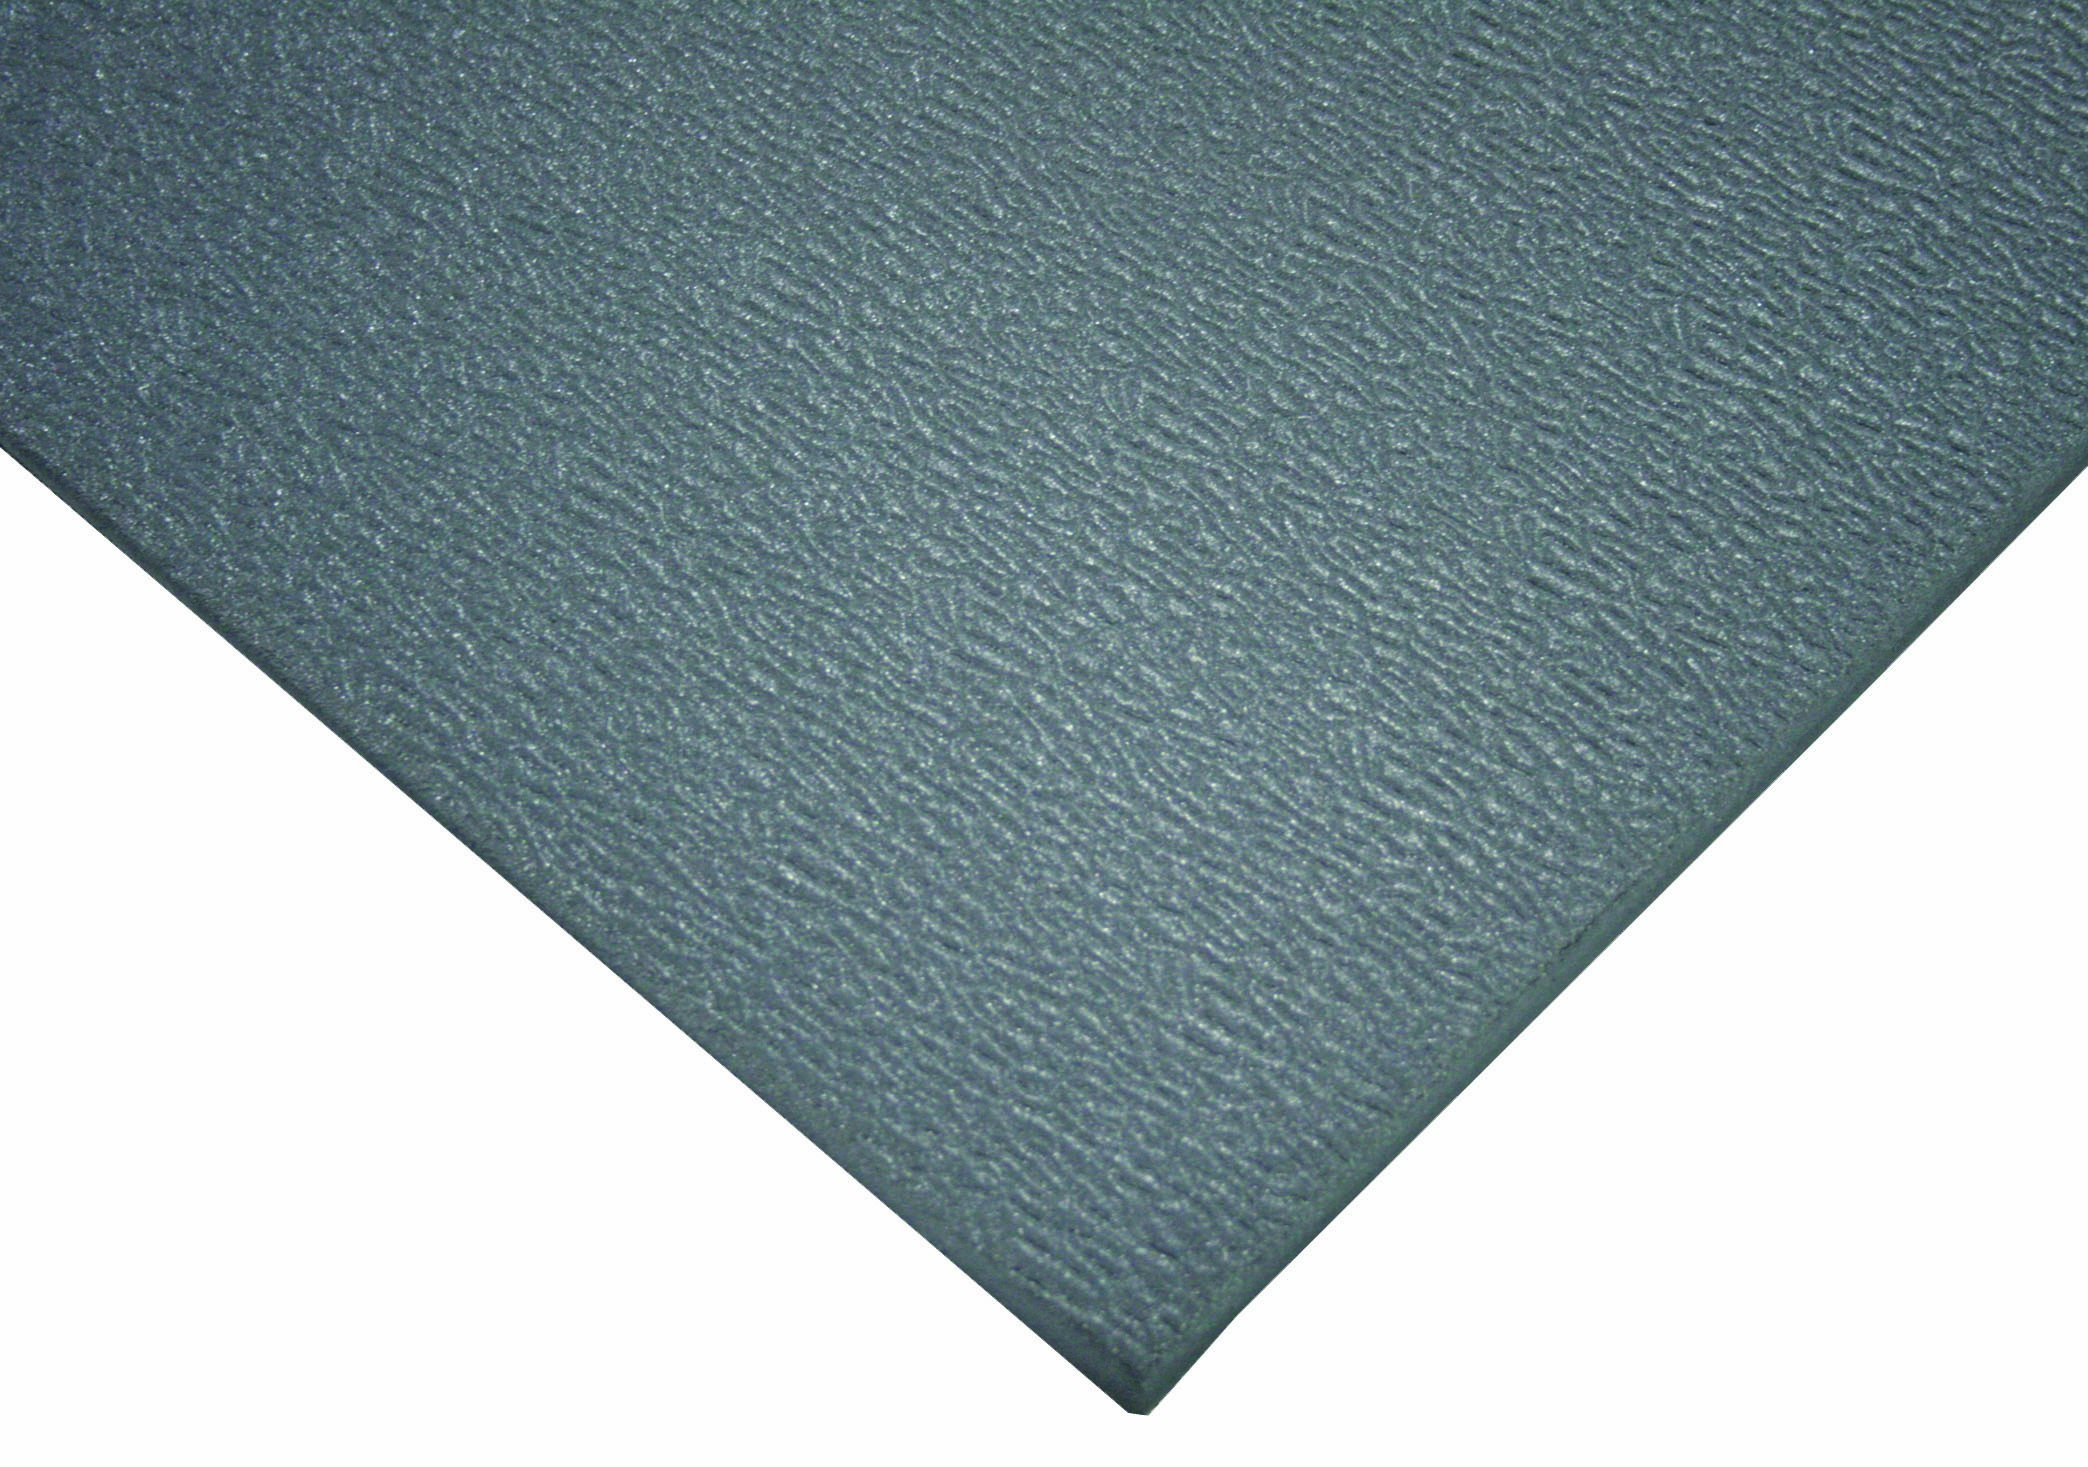 Wearwell PVC 427 SoftStep Light Duty Anti-Fatigue Mat, for Dry Areas, 3' Width x 5' Length x 3/8'' Thickness, Gray